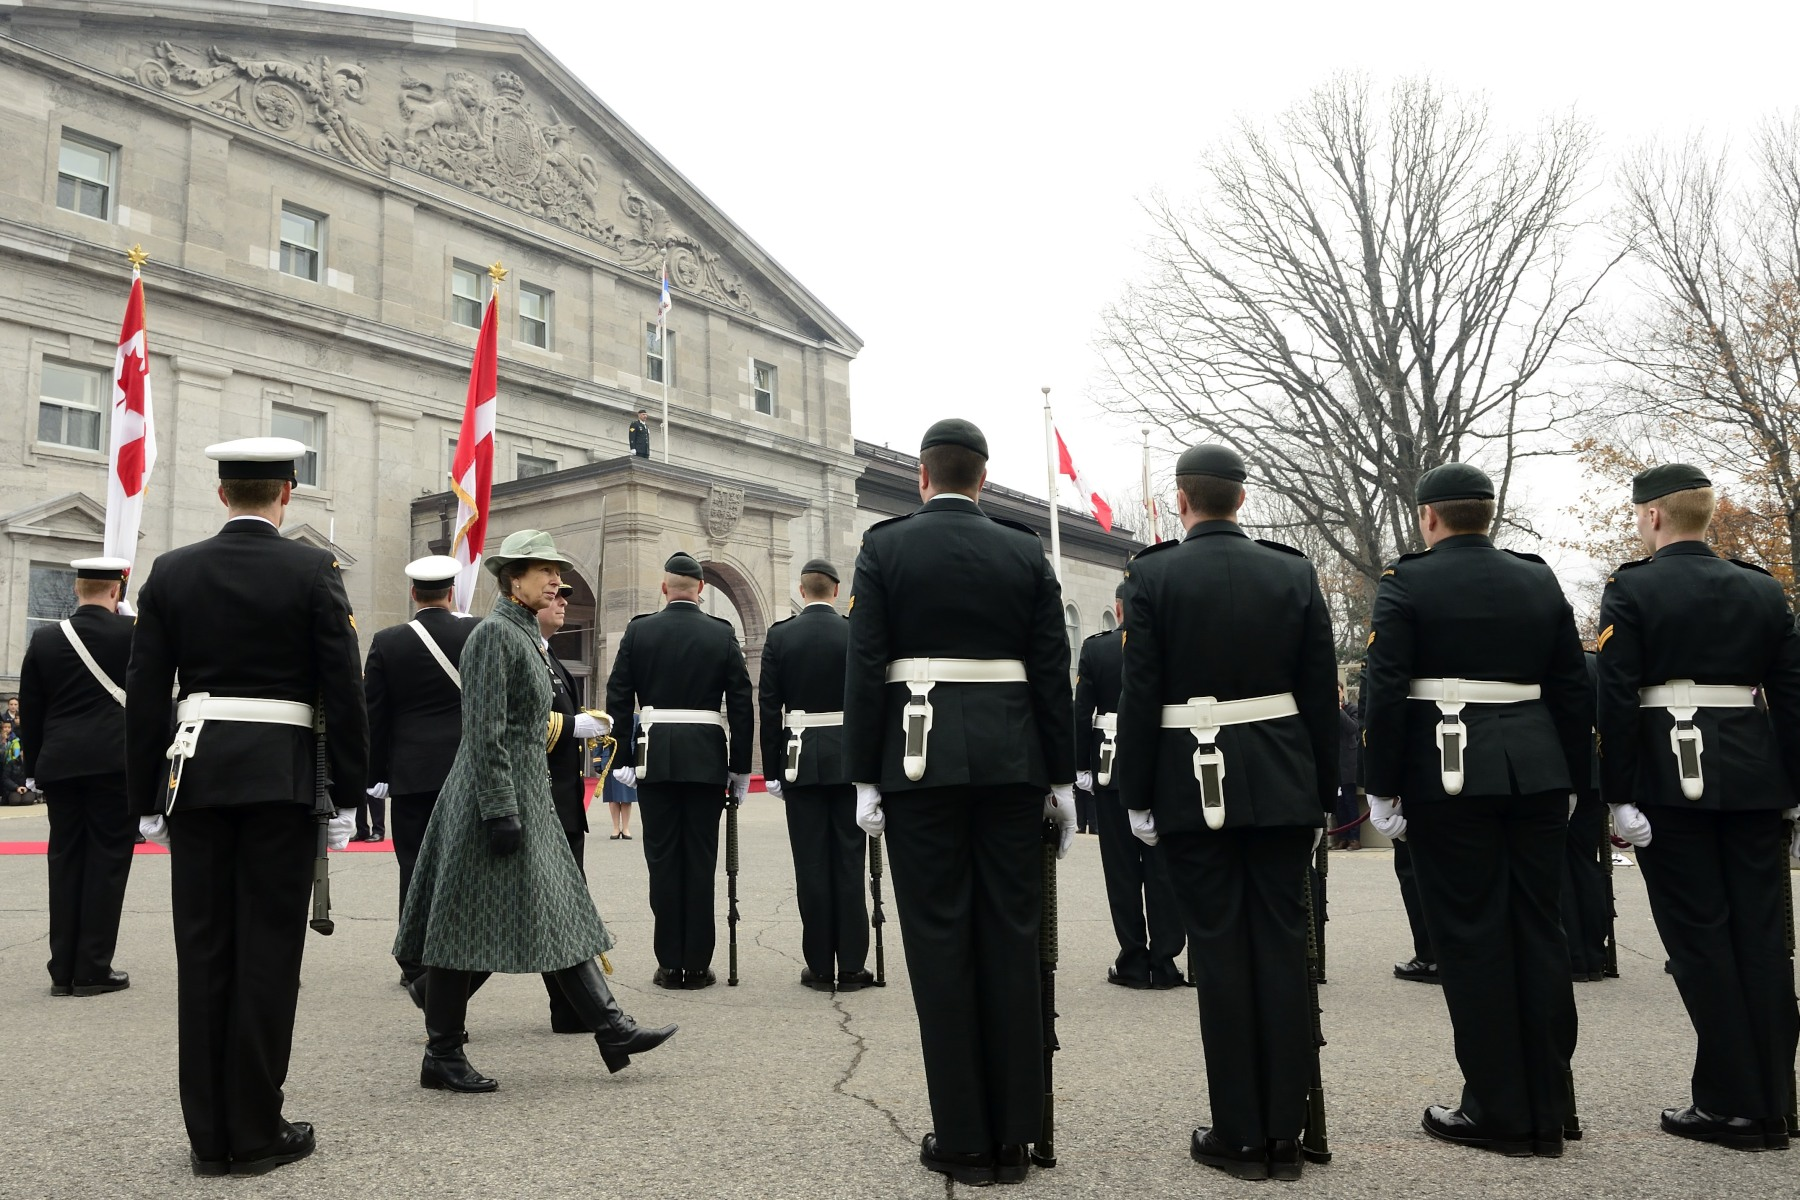 Her Royal Highness took the time to inspect both ranks of members of the Canadian Armed Forces.